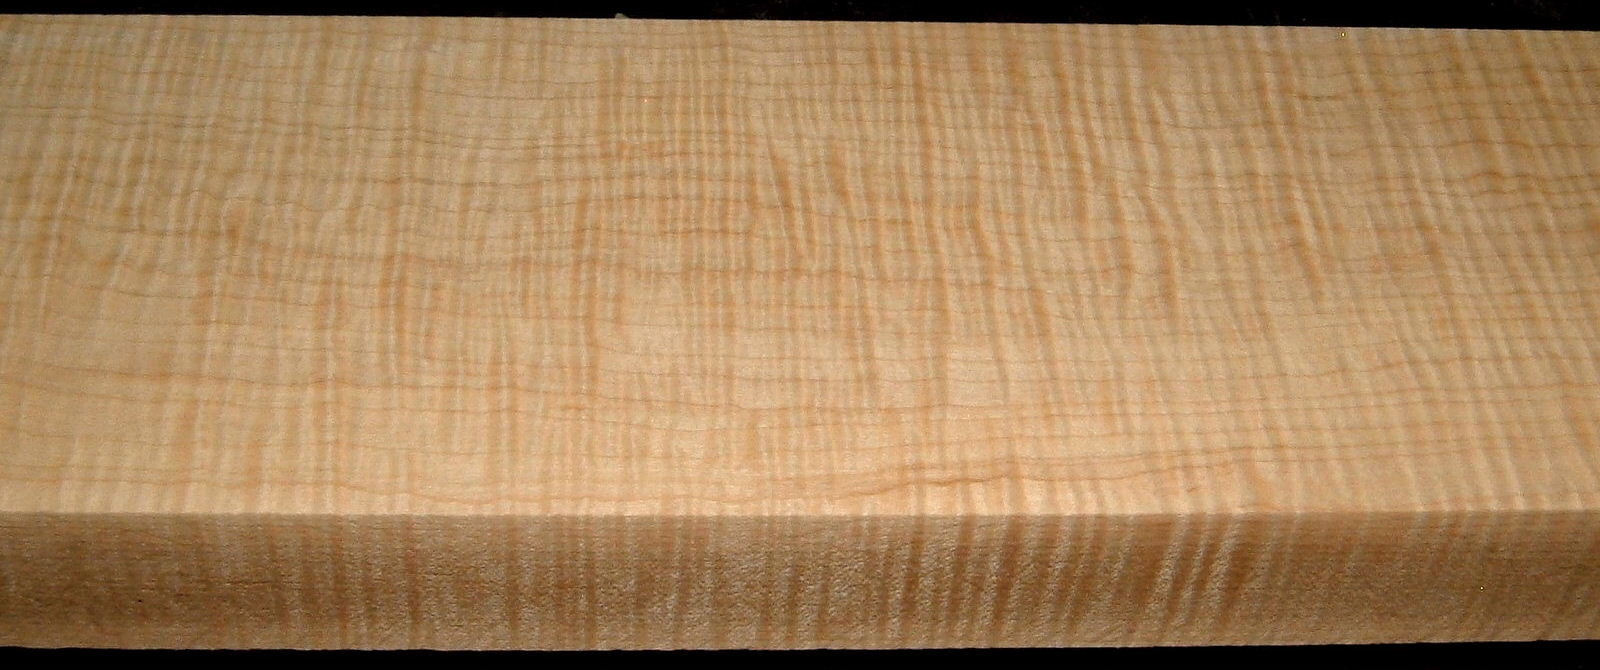 QS2001-6, 1-9/16x5x50, Quartersawn Curly Maple